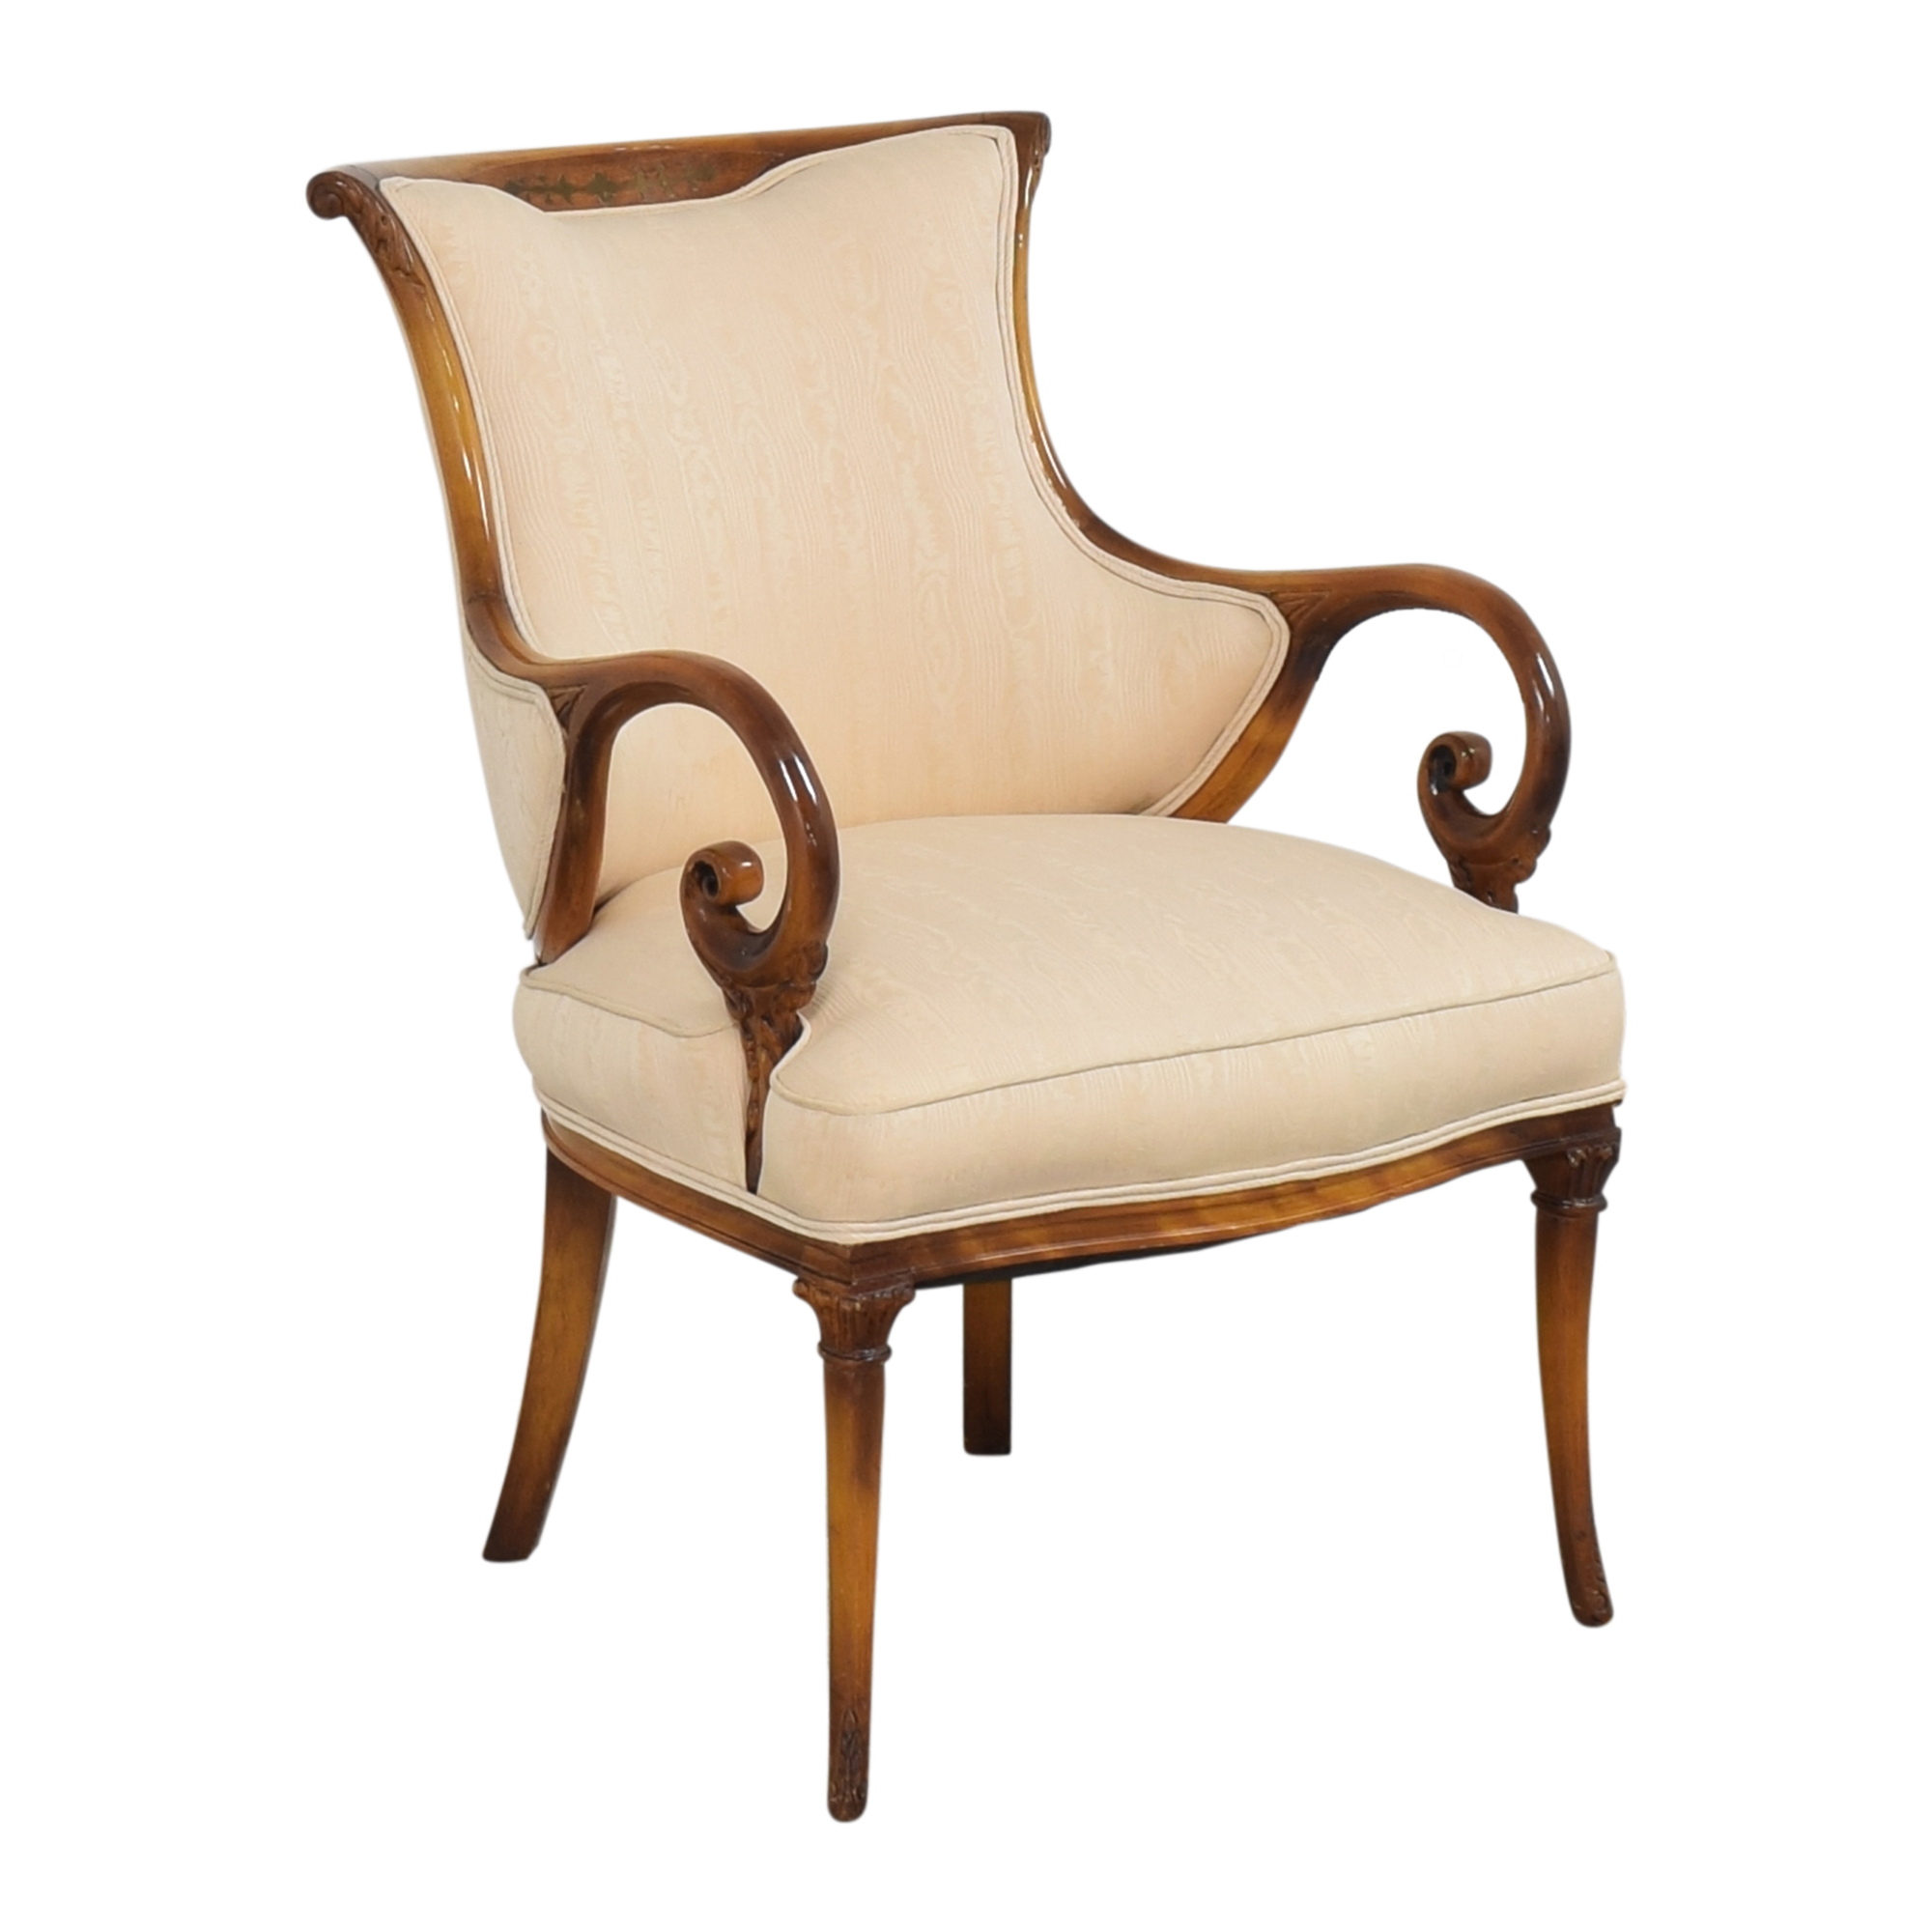 Decorative Upholstered Arm Chair brown and beige